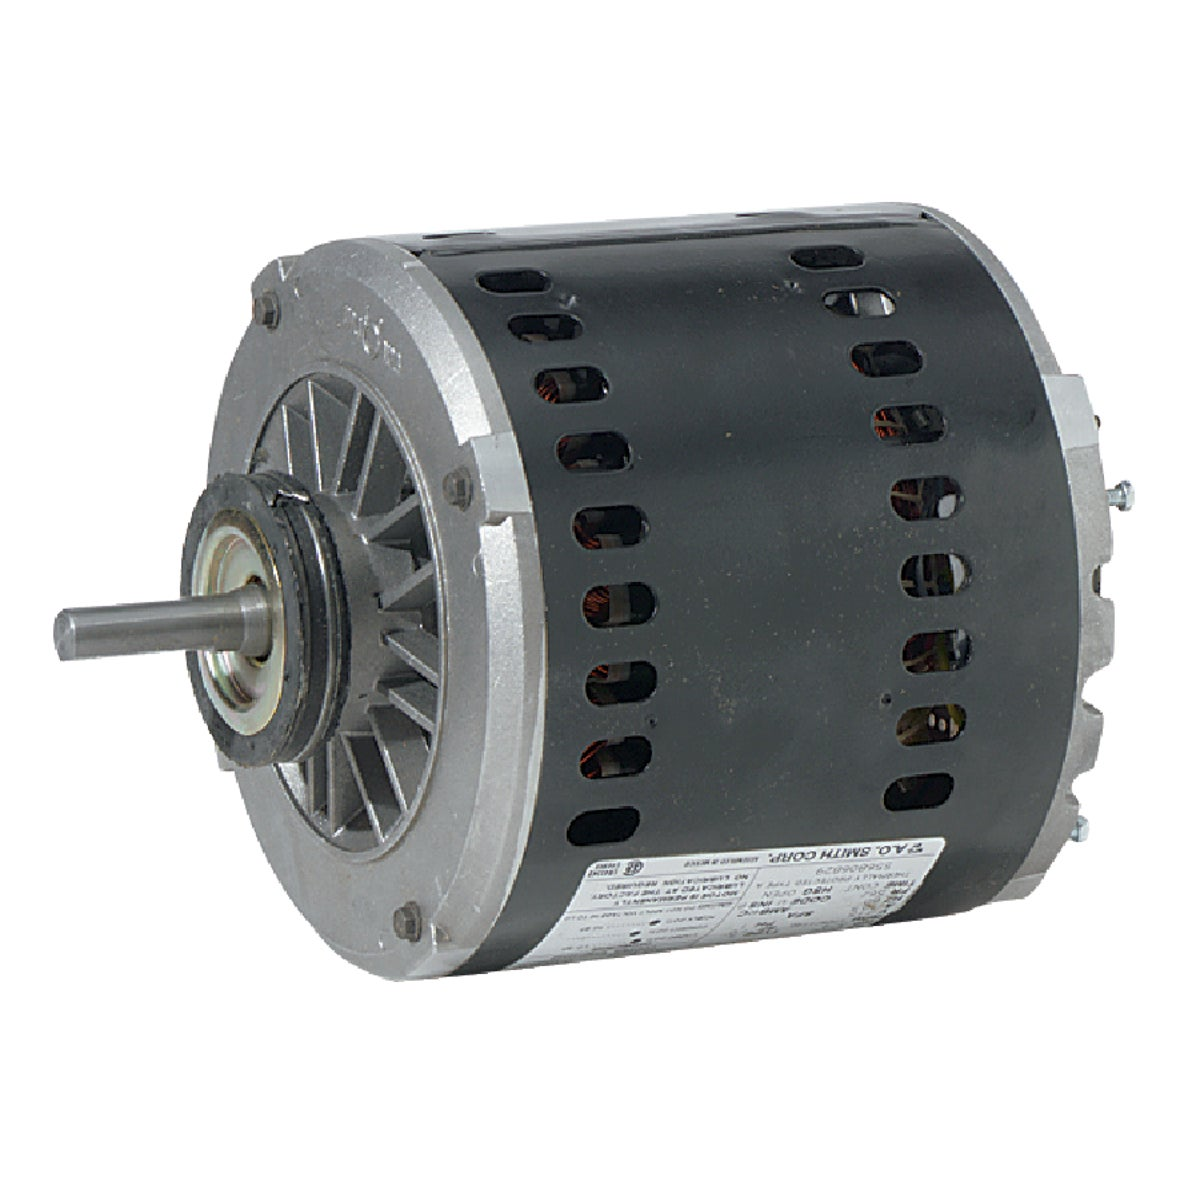 MOTOR 3/4HP 2 SPEED - 2206 by Dial Manufacturing